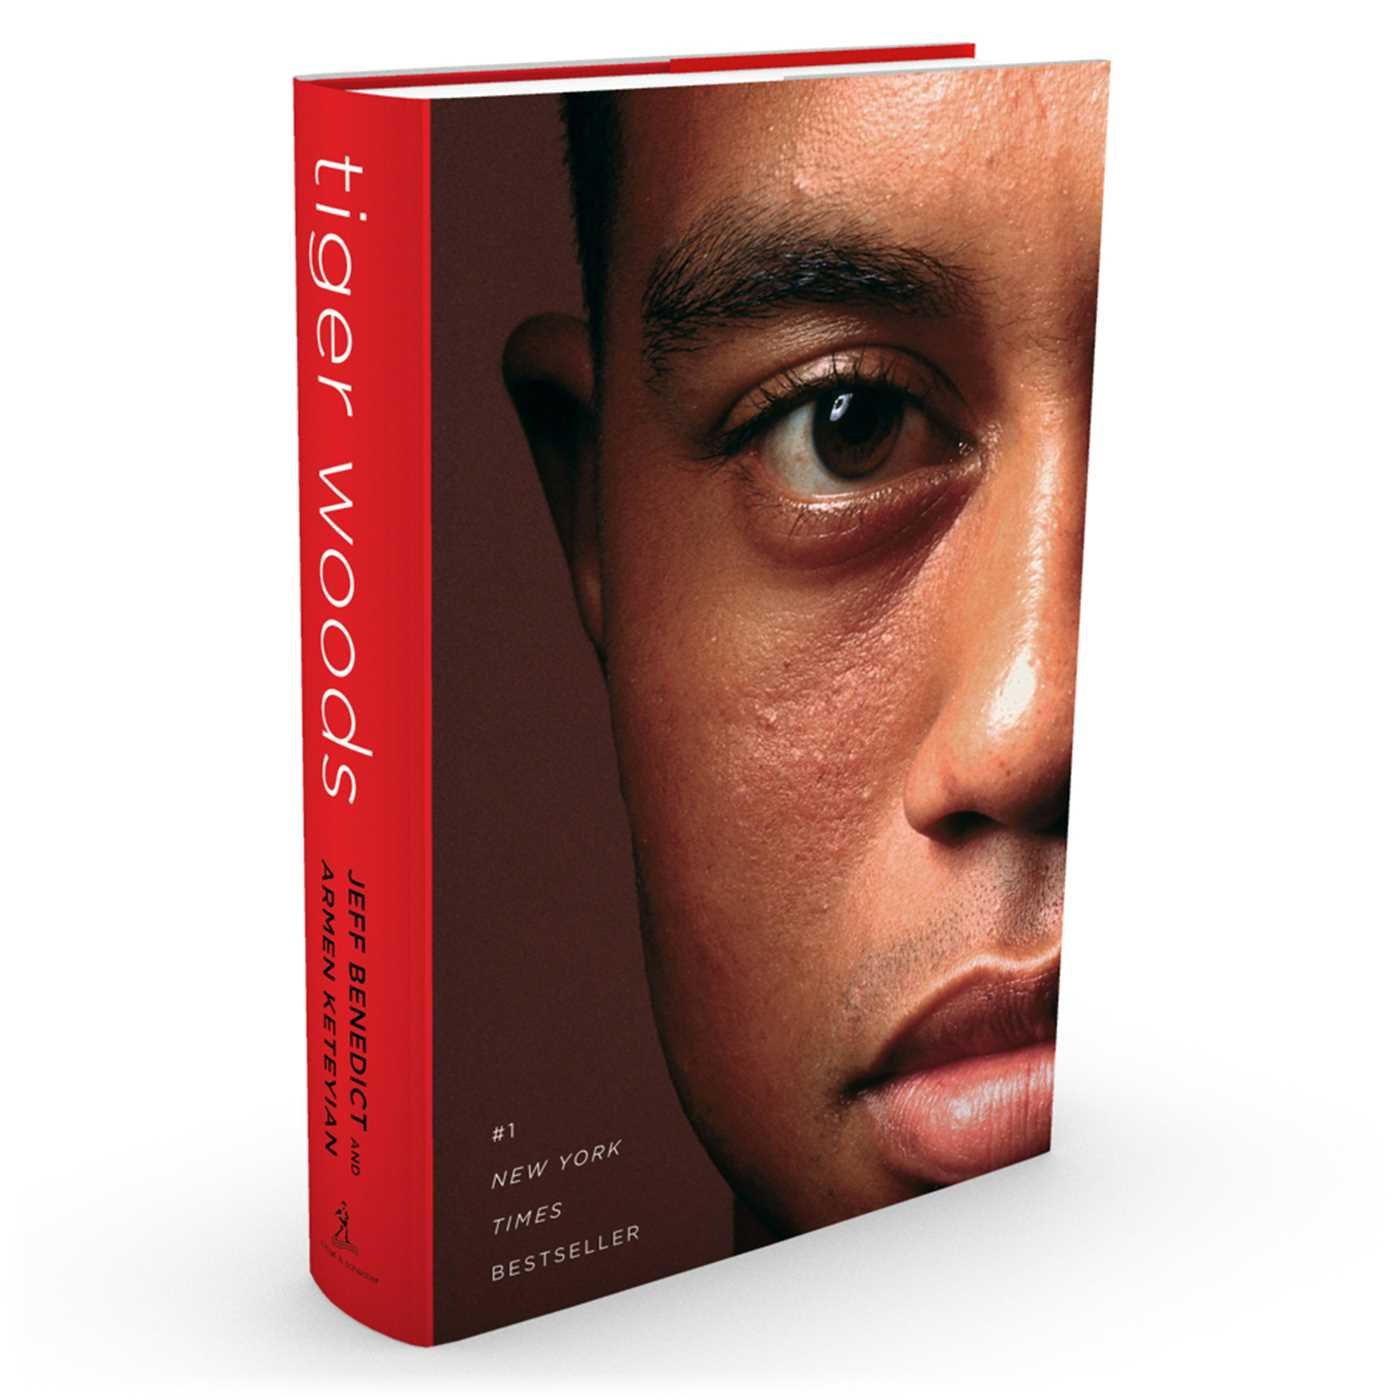 Tiger Woods by Simon & Schuster